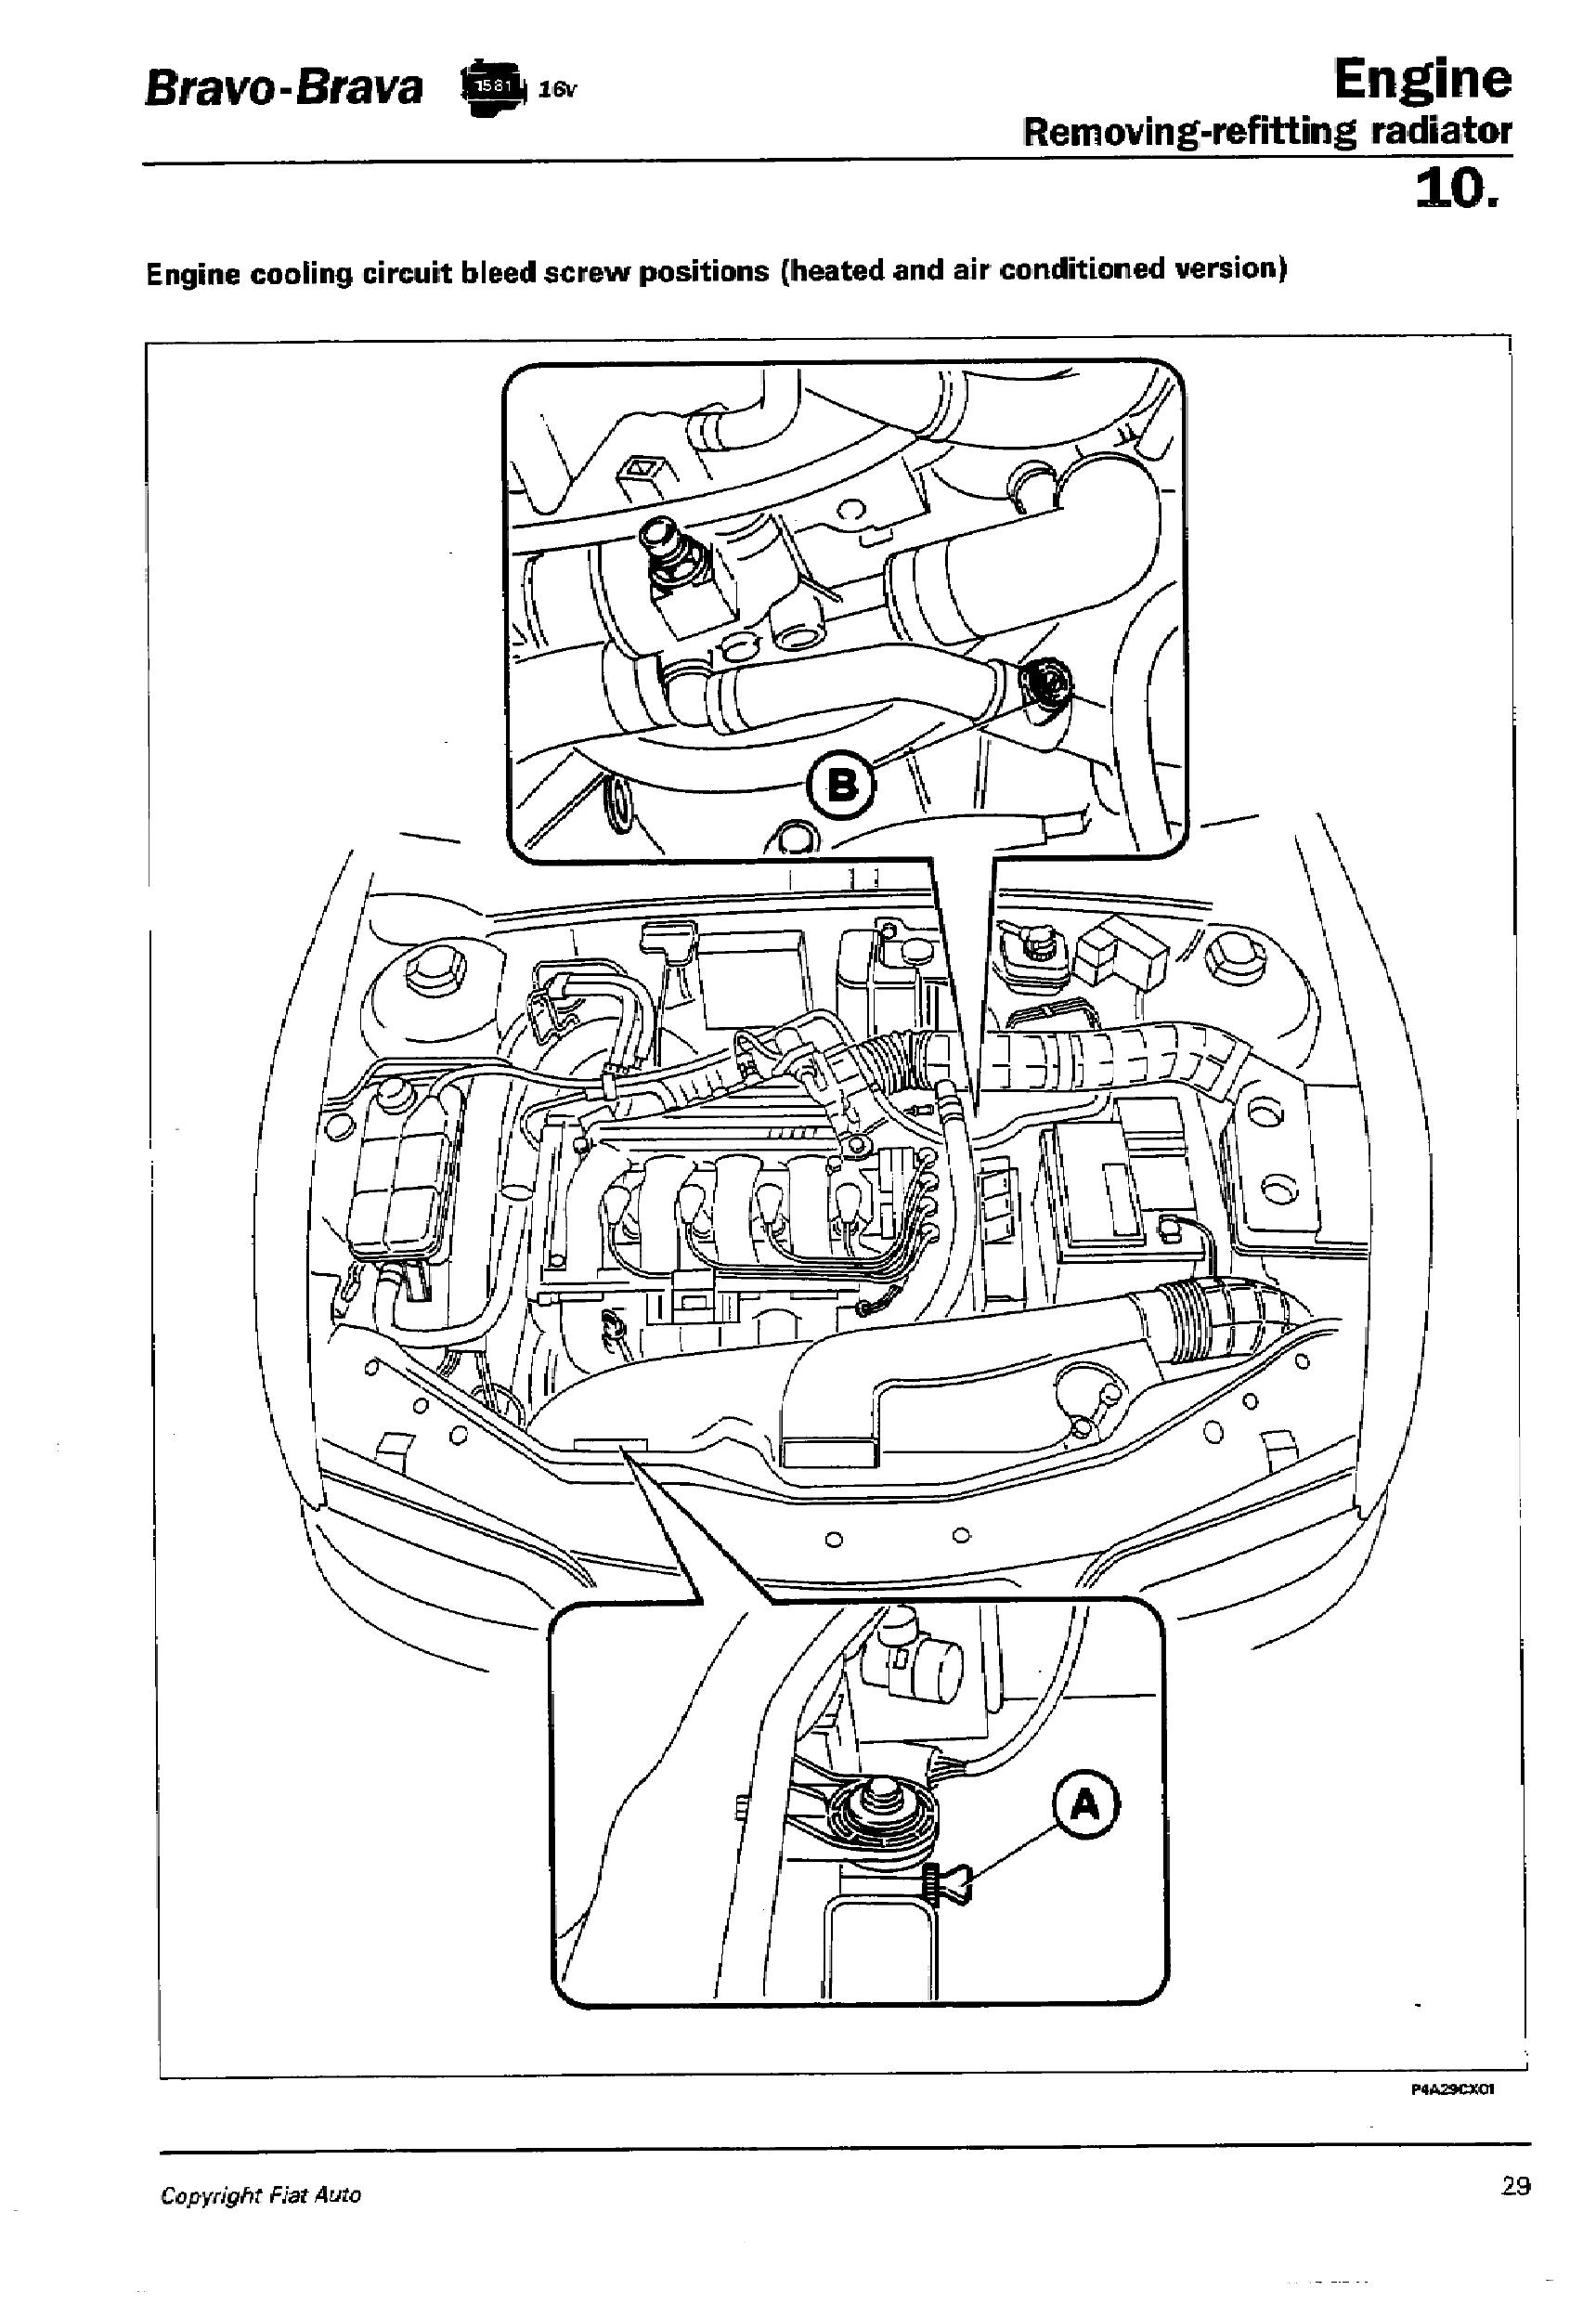 fiat palio engine diagram auto electrical wiring diagramtechnical where exactly are the bleeding screws in a 1 6